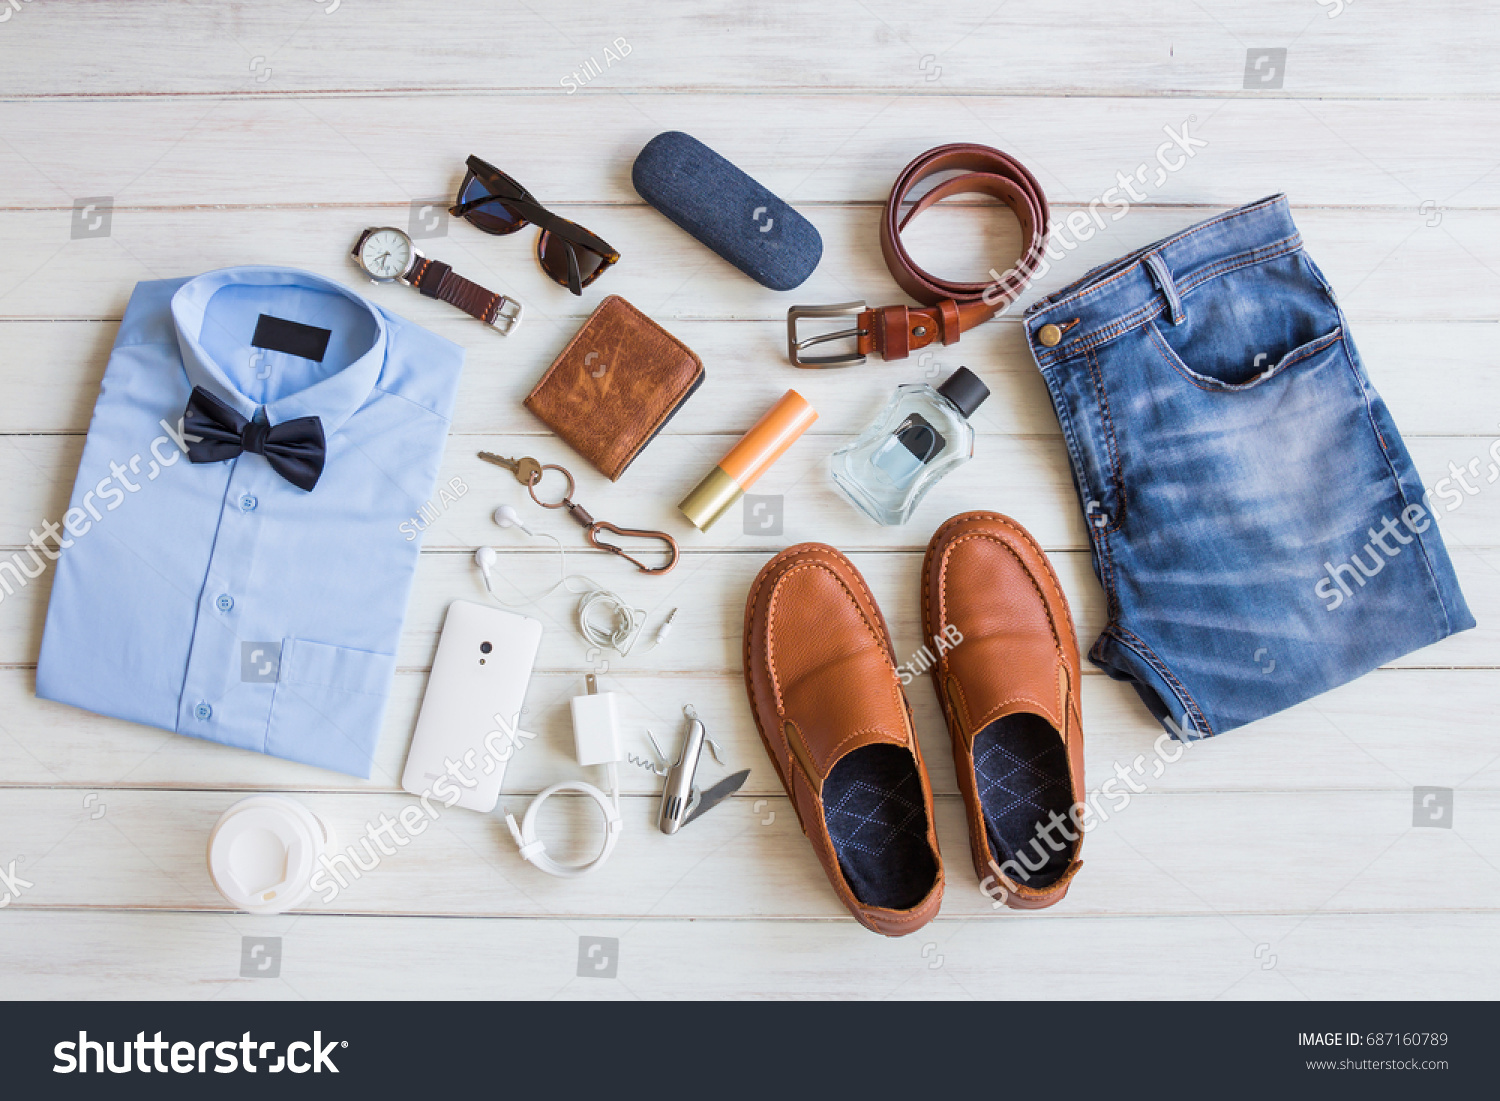 dbc75cca9 Flat Lay Mens Fashion Casual Outfits Stock Photo (Edit Now ...